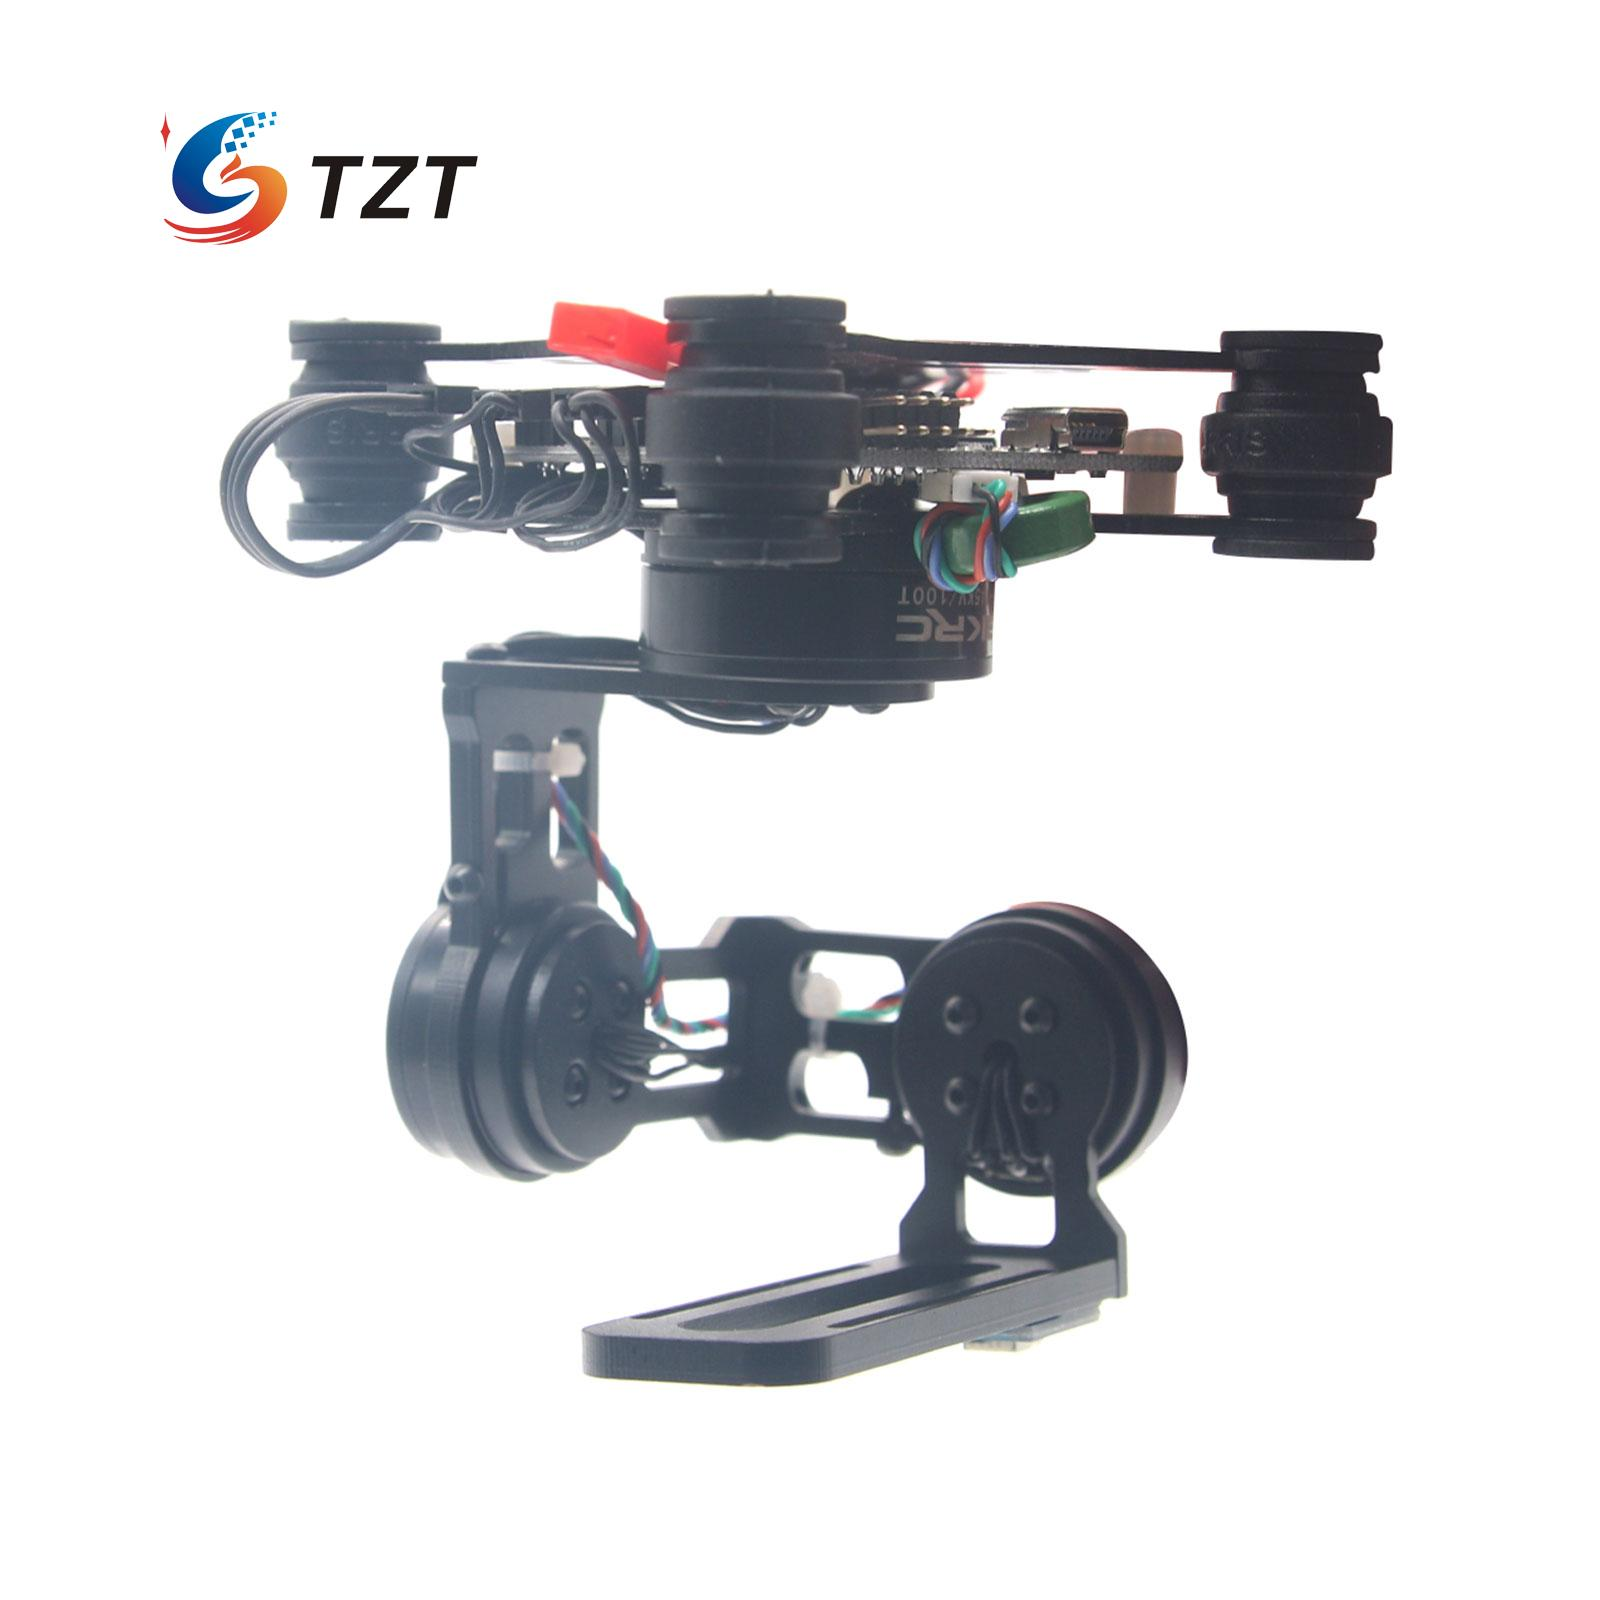 Storm32 FPV 3 Axis Brushless Gimbal Gopro Camera Stabilizer with Motors & Storm32 Controller 2015 hot sale quadcopter 3 axis gimbal brushless ptz dys w 4108 motor evvgc controller for nex ildc camera